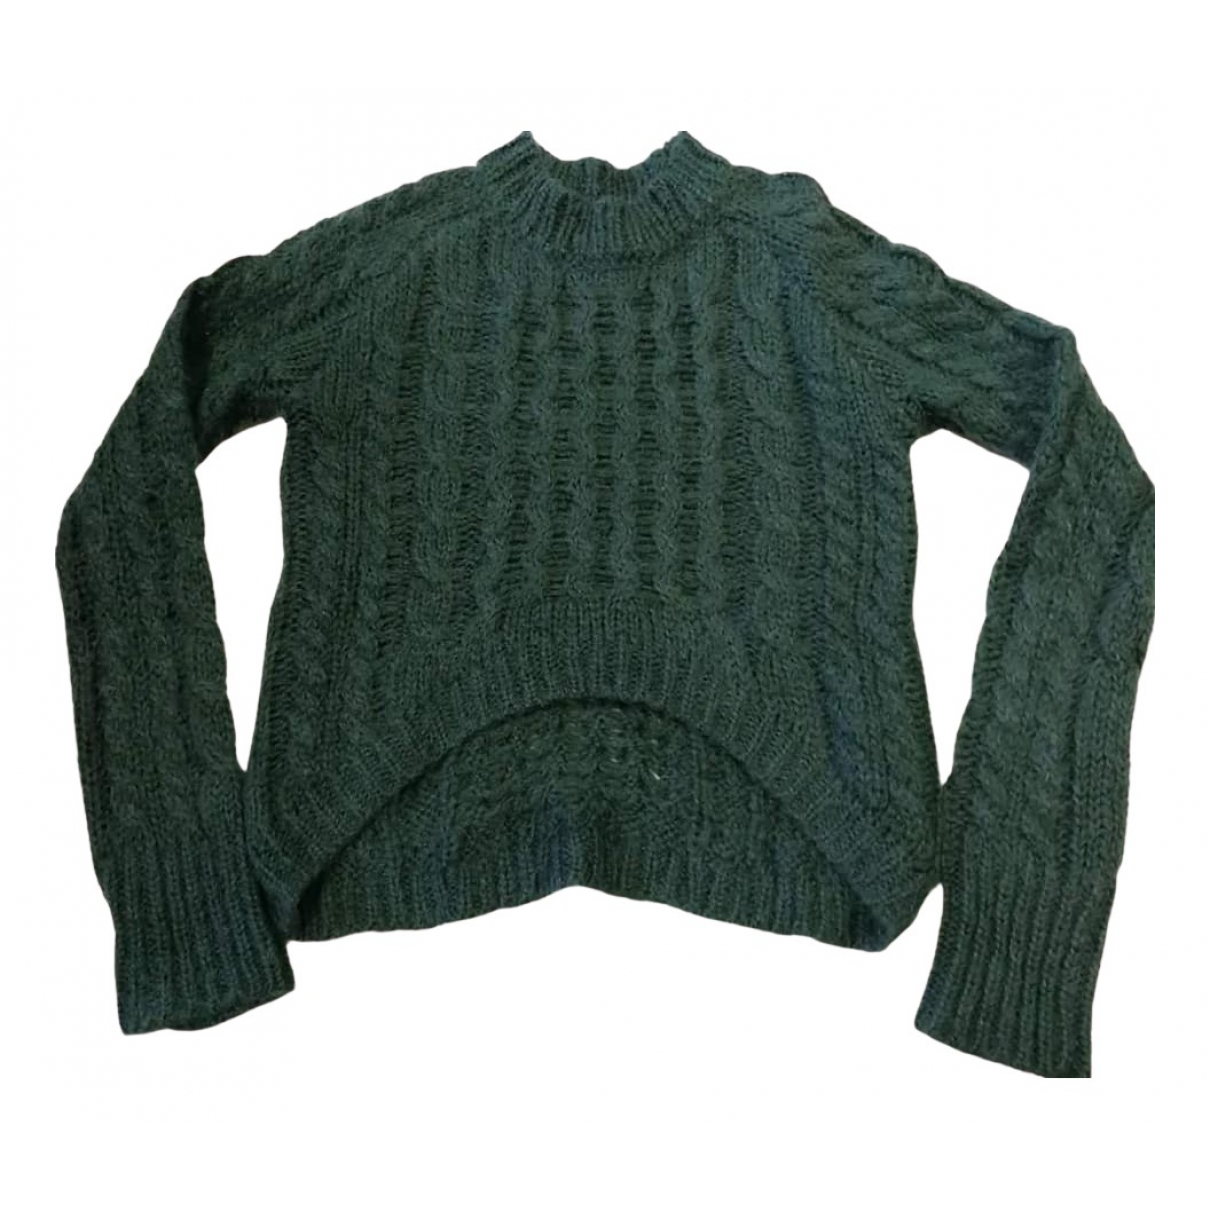 Dondup N Green Wool Knitwear for Kids 8 years - up to 128cm FR